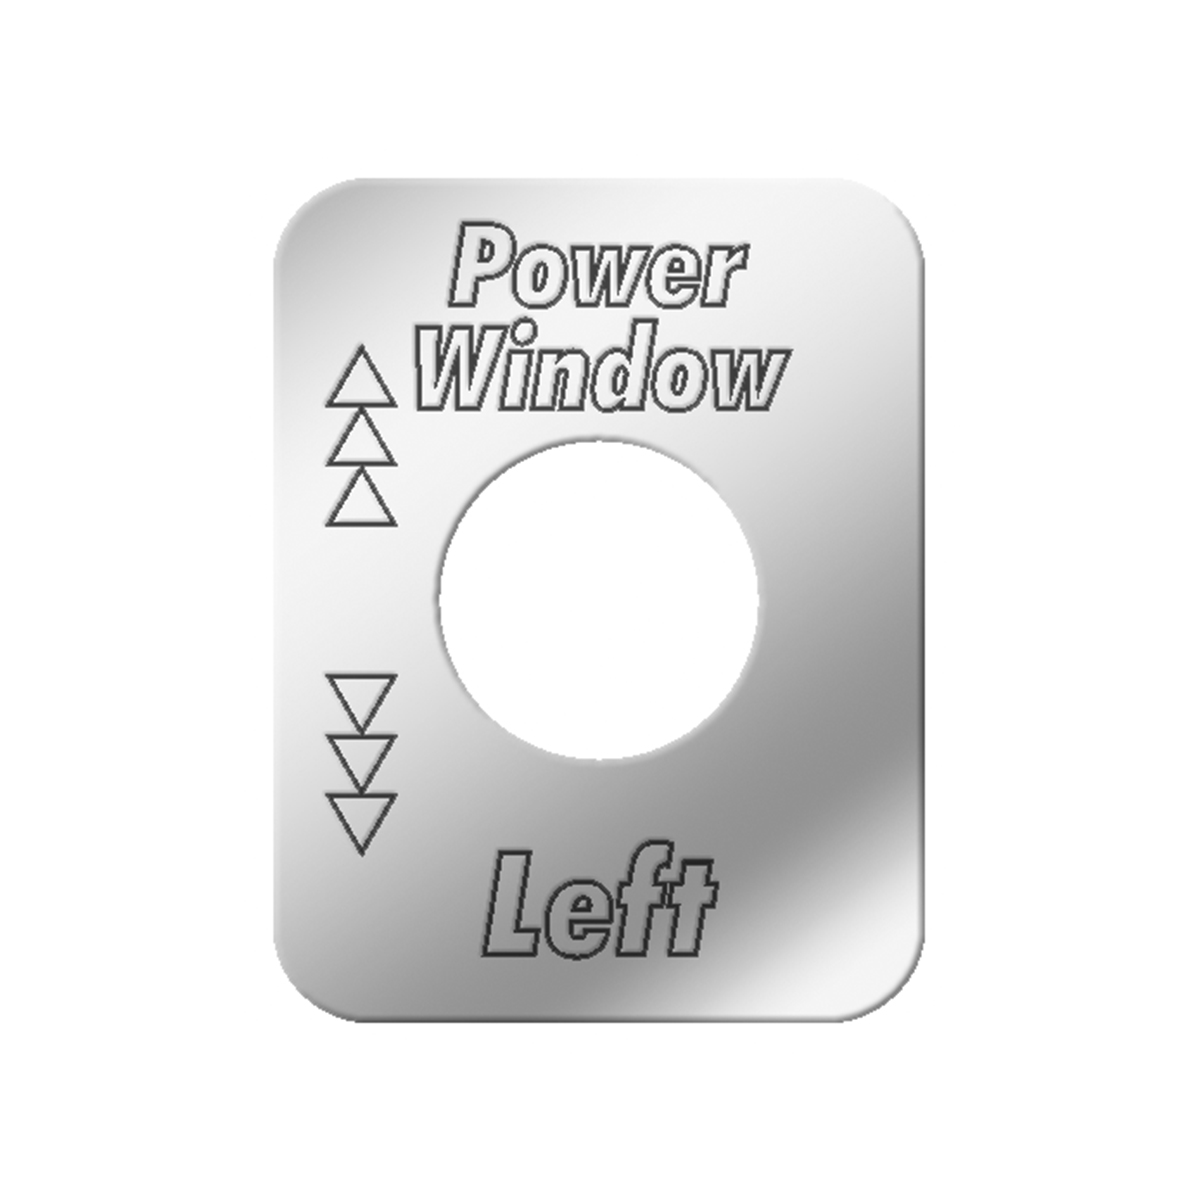 #68562 Power Air Operated Window - Left